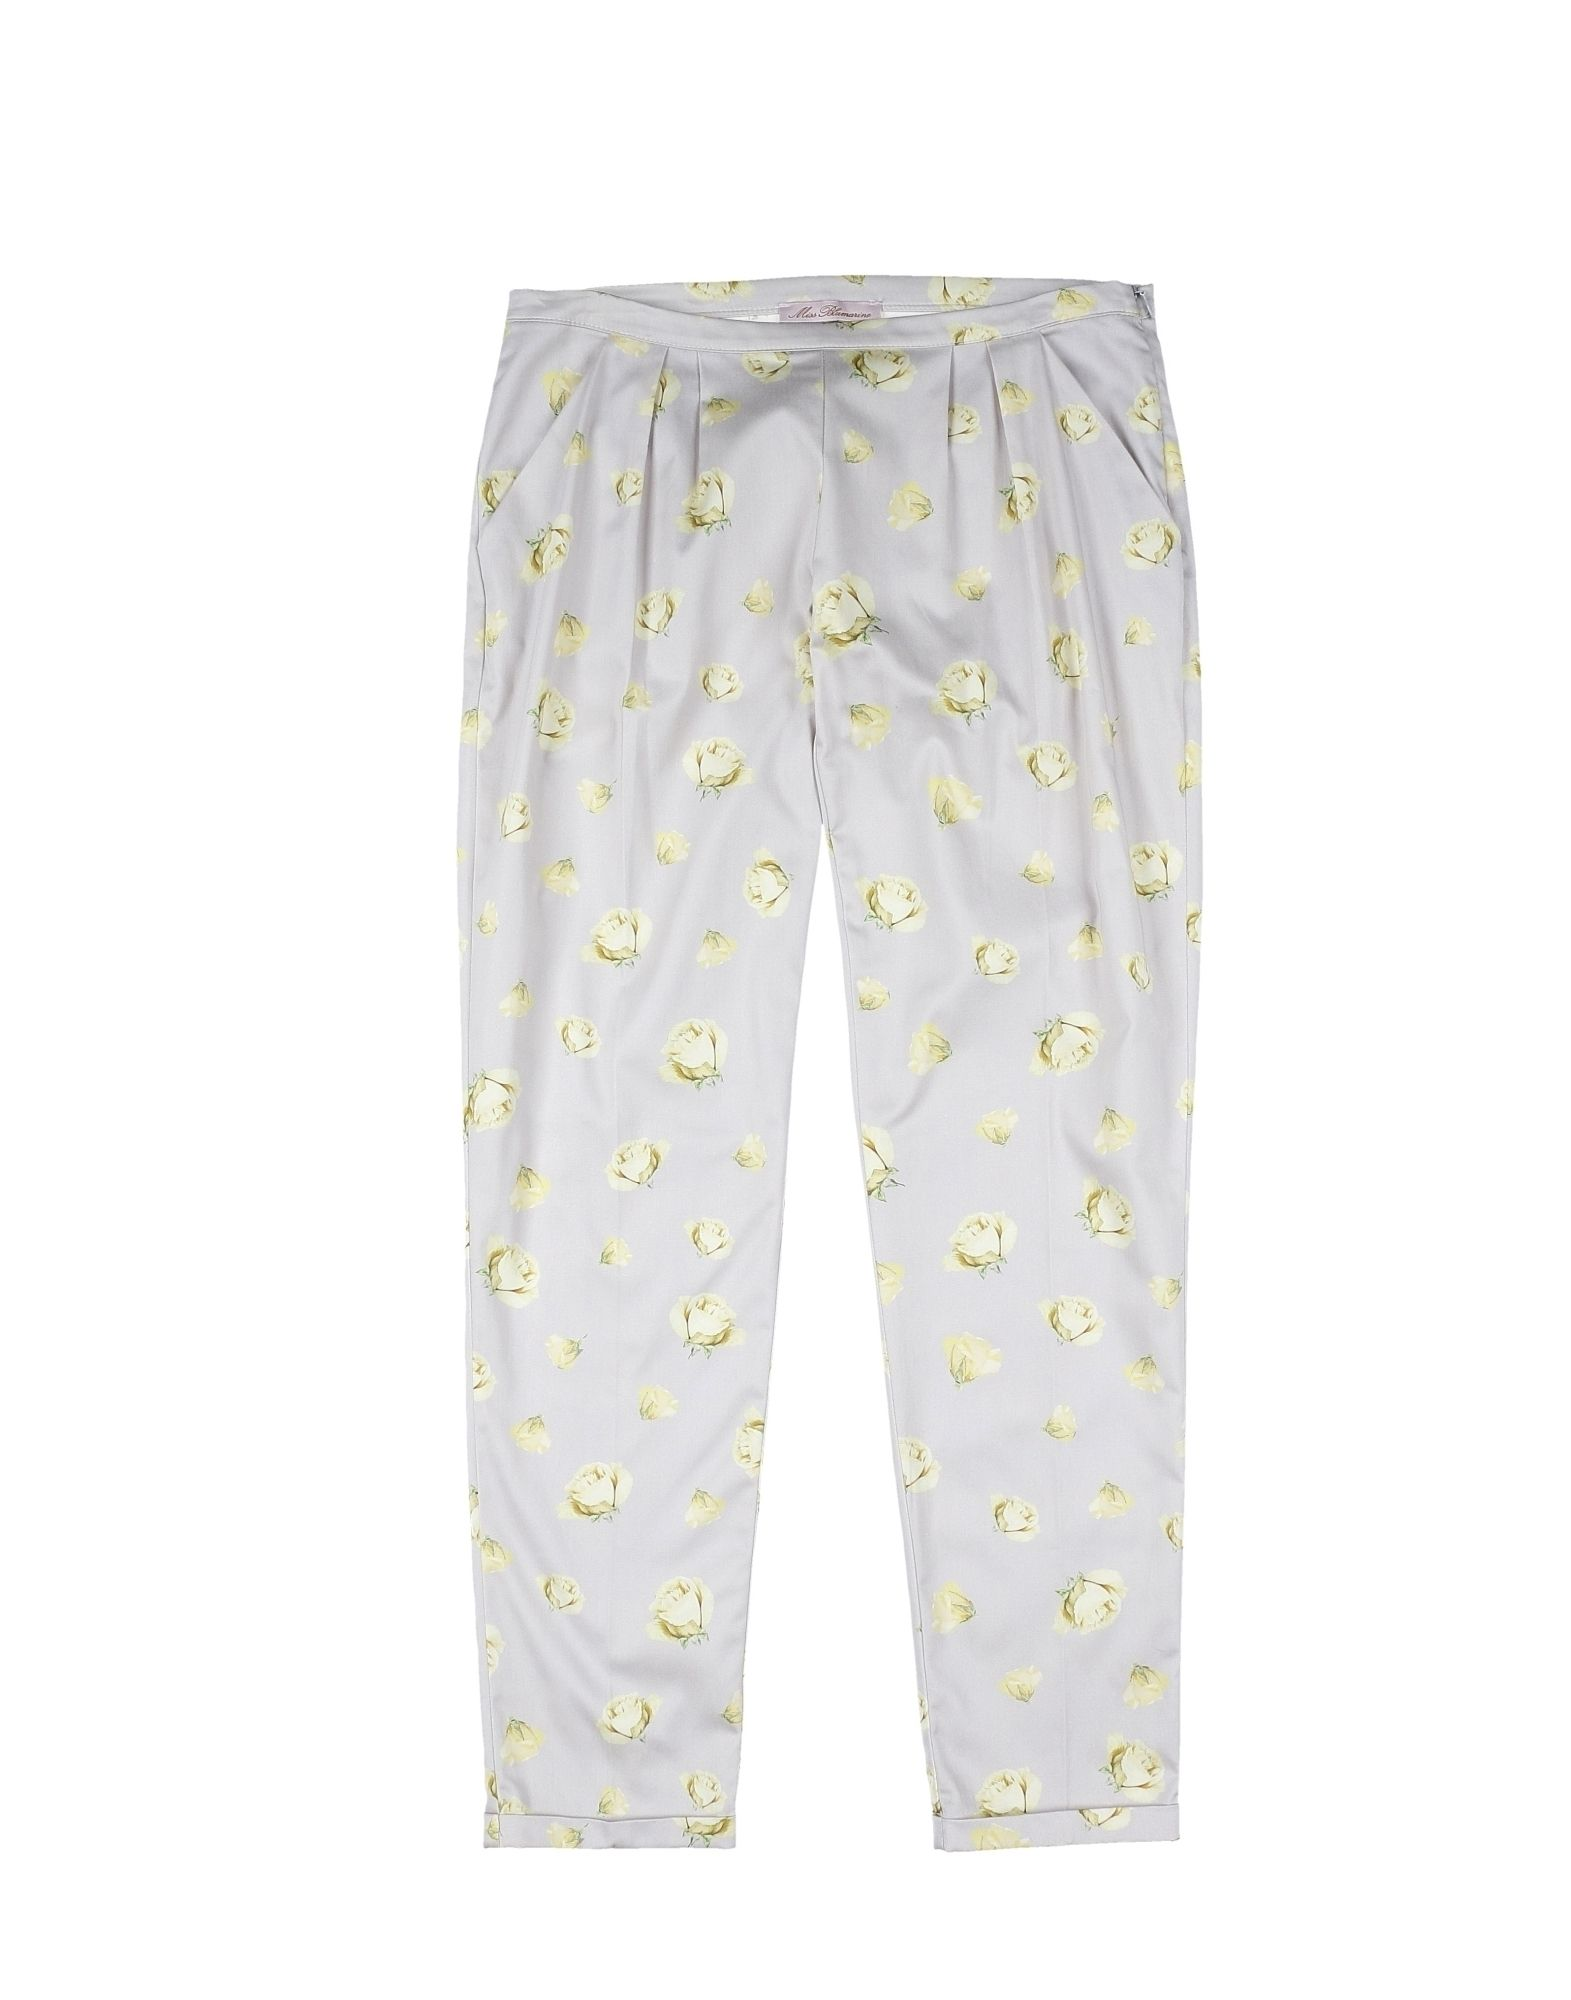 Miss Blumarine Kids' Casual Pants In Green